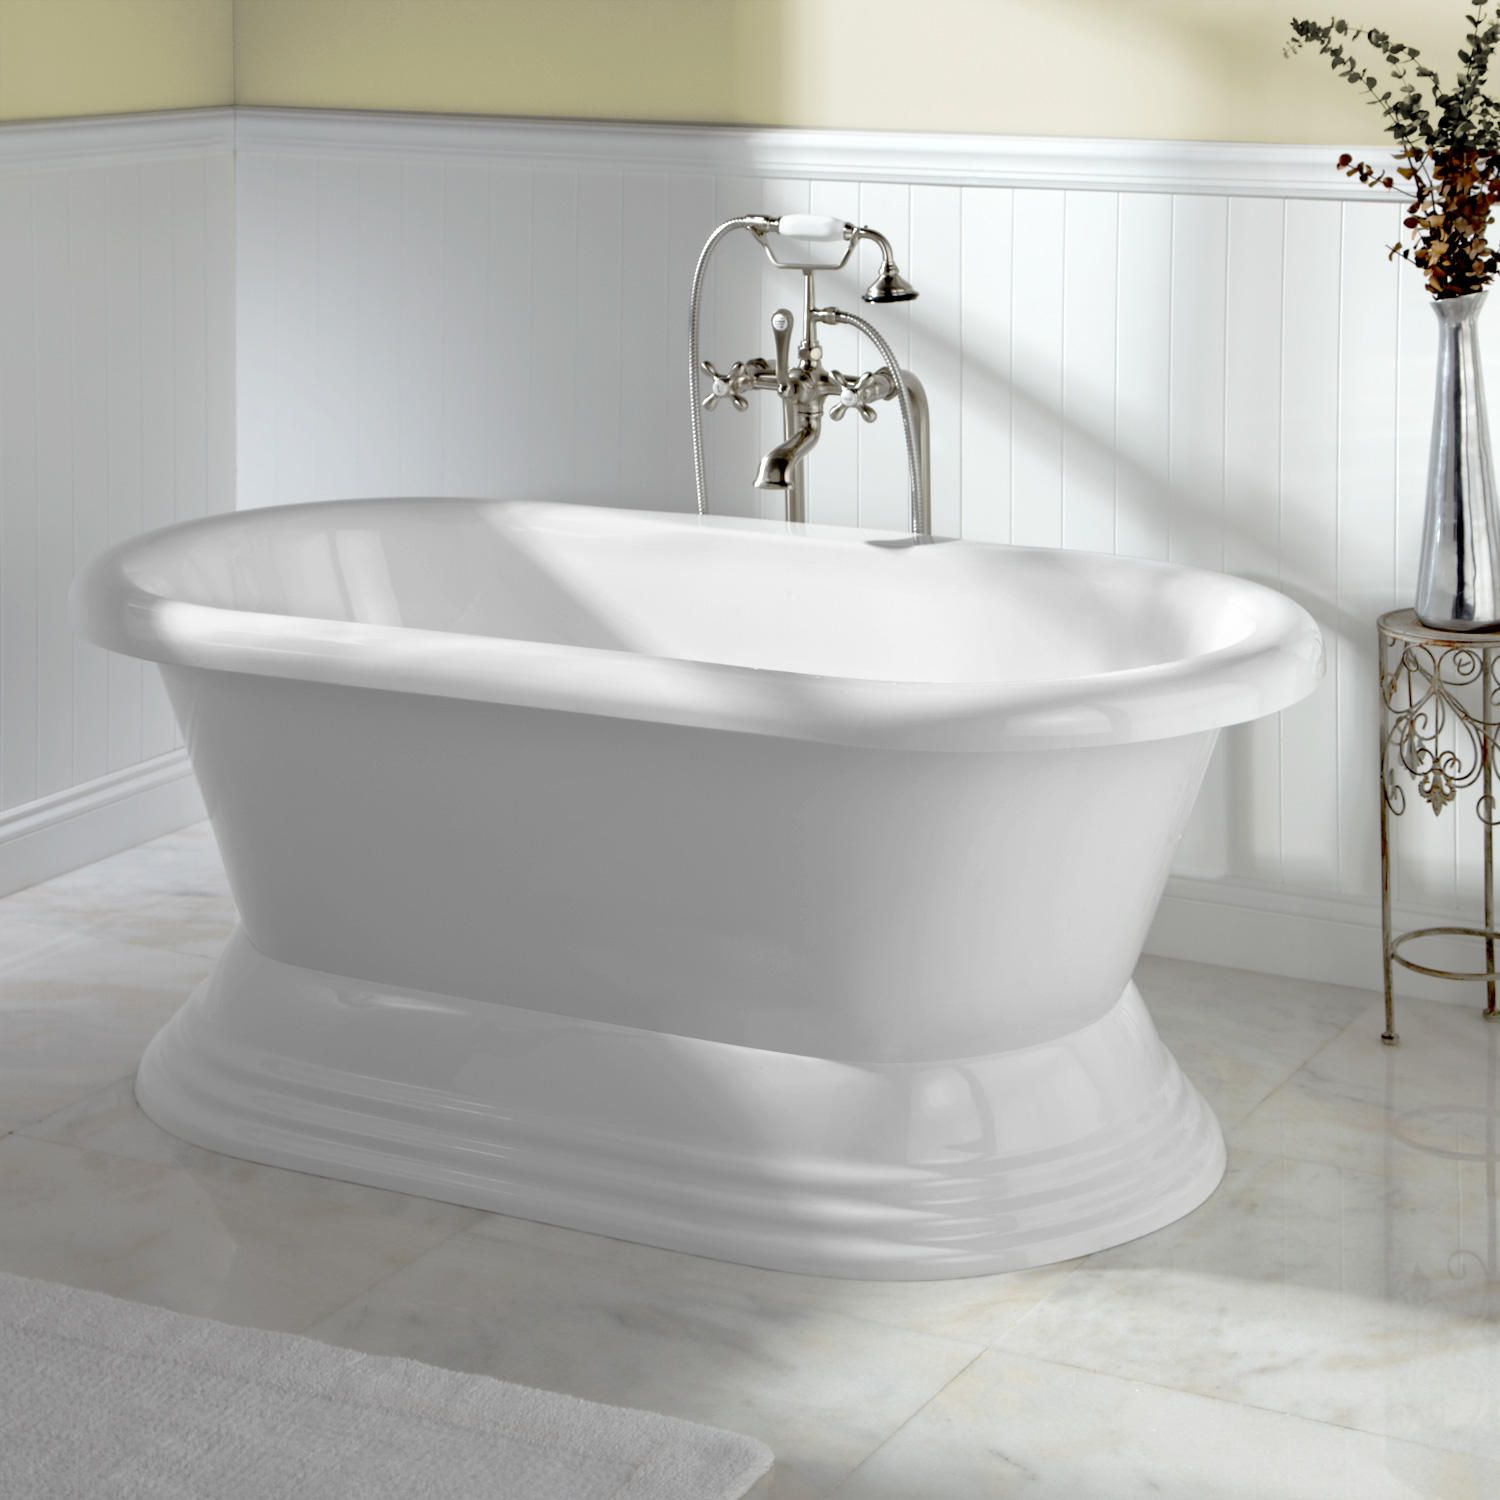 Exciting Stand Alone Tubs For Bathroom Decoration Ideas: Free Standing Bath  Tubs | Freestanding Soaking